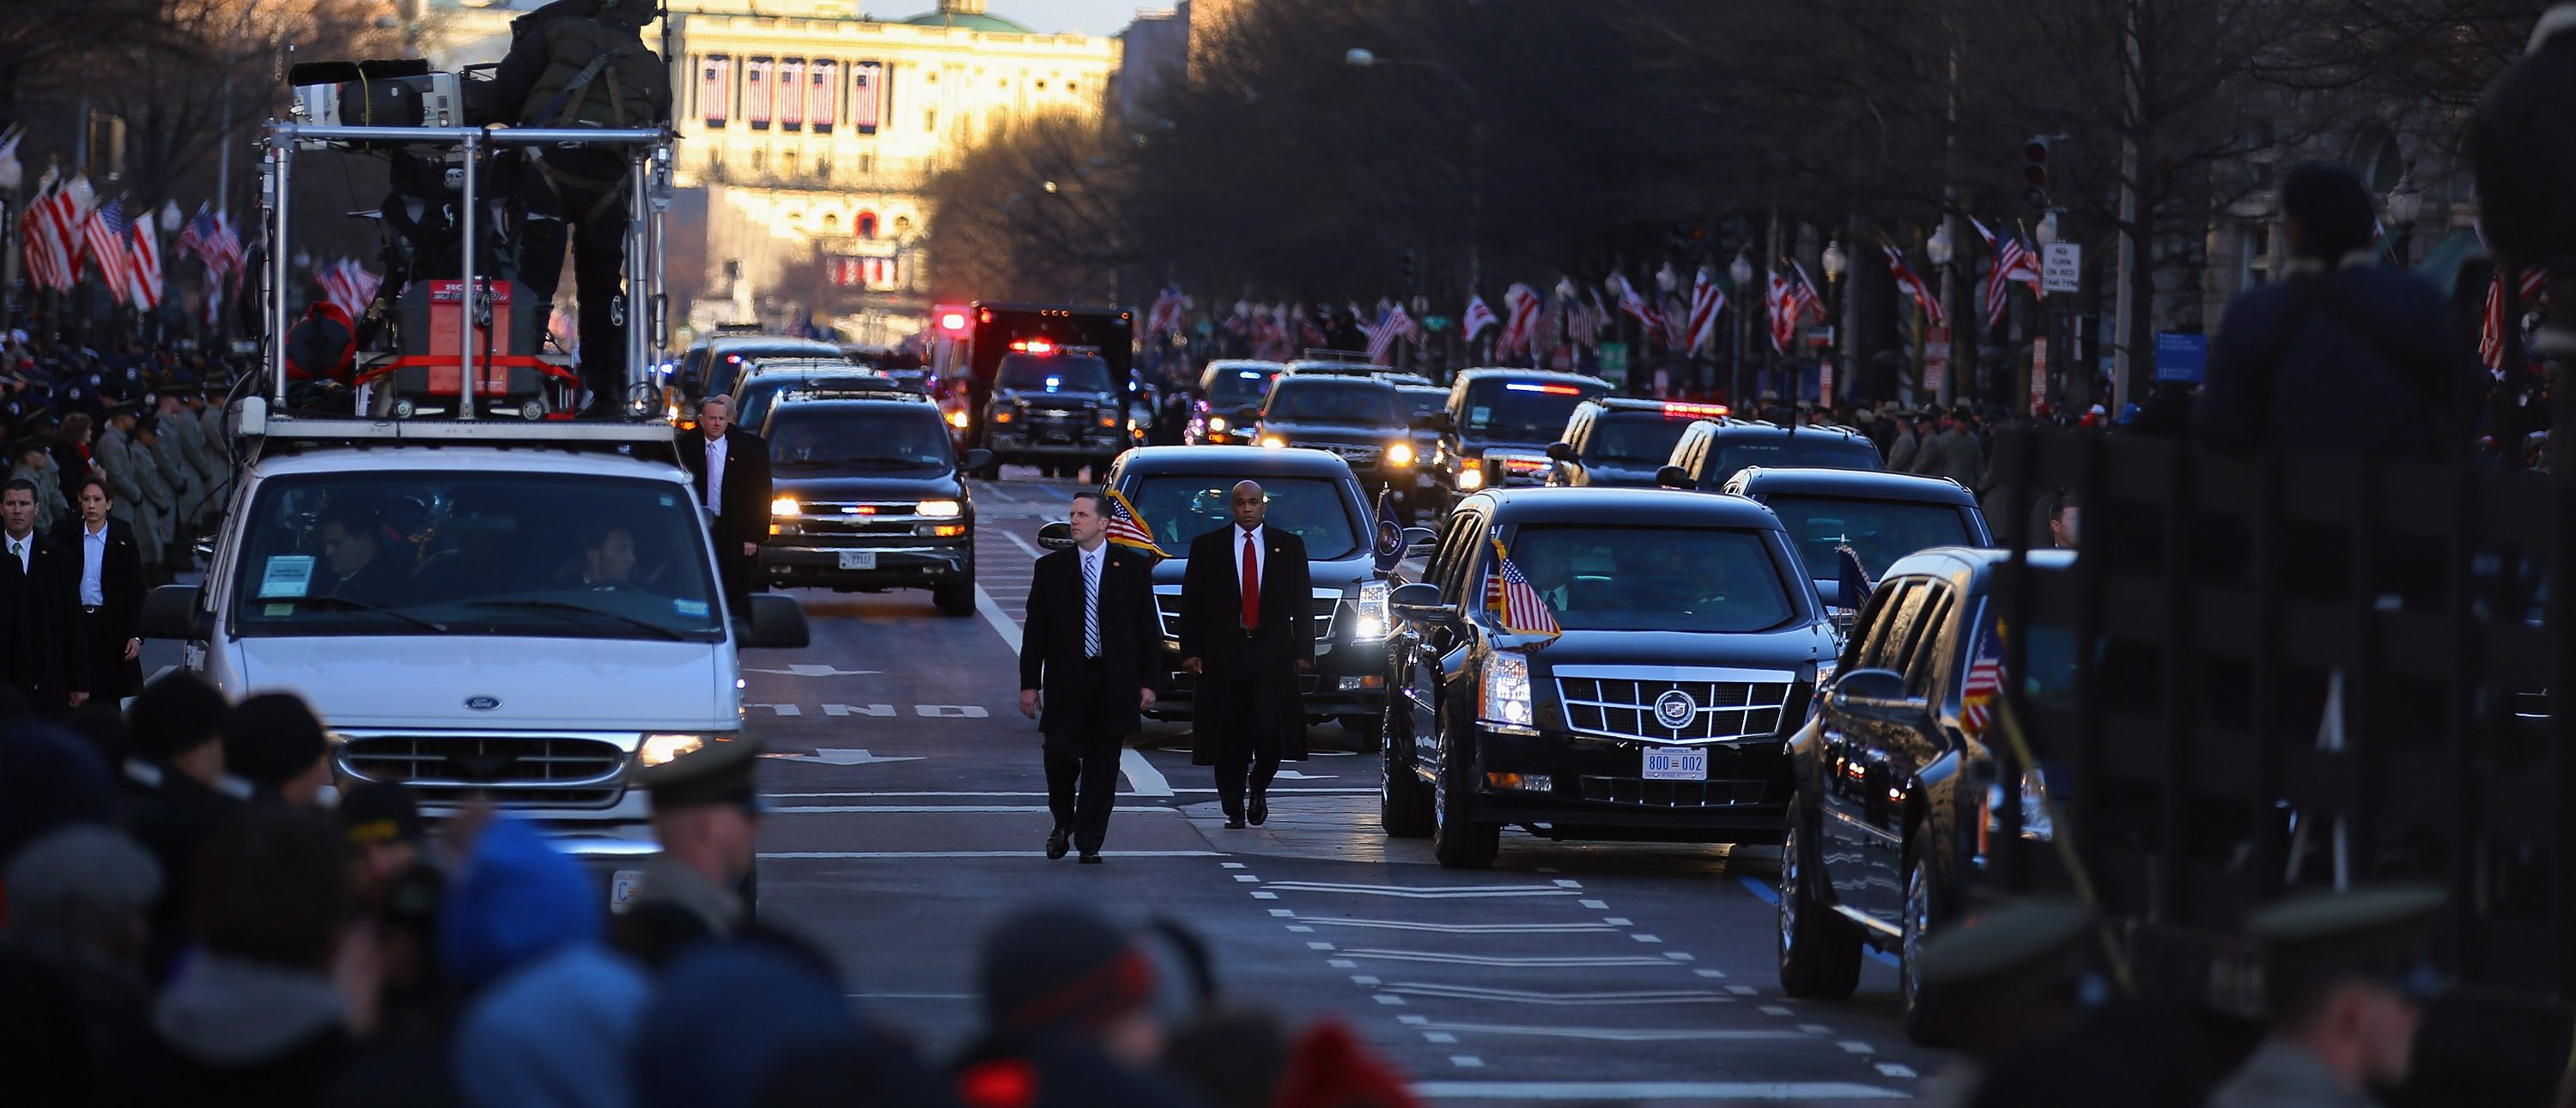 WASHINGTON, DC - JANUARY 21: U.S. President Barack Obama drives down Pennsylvania avenue in his vehicle during the Inauguration Parade on January 21, 2013 in Washington, DC. The President was sworn in for second term. (Photo by Joe Raedle/Getty Images)